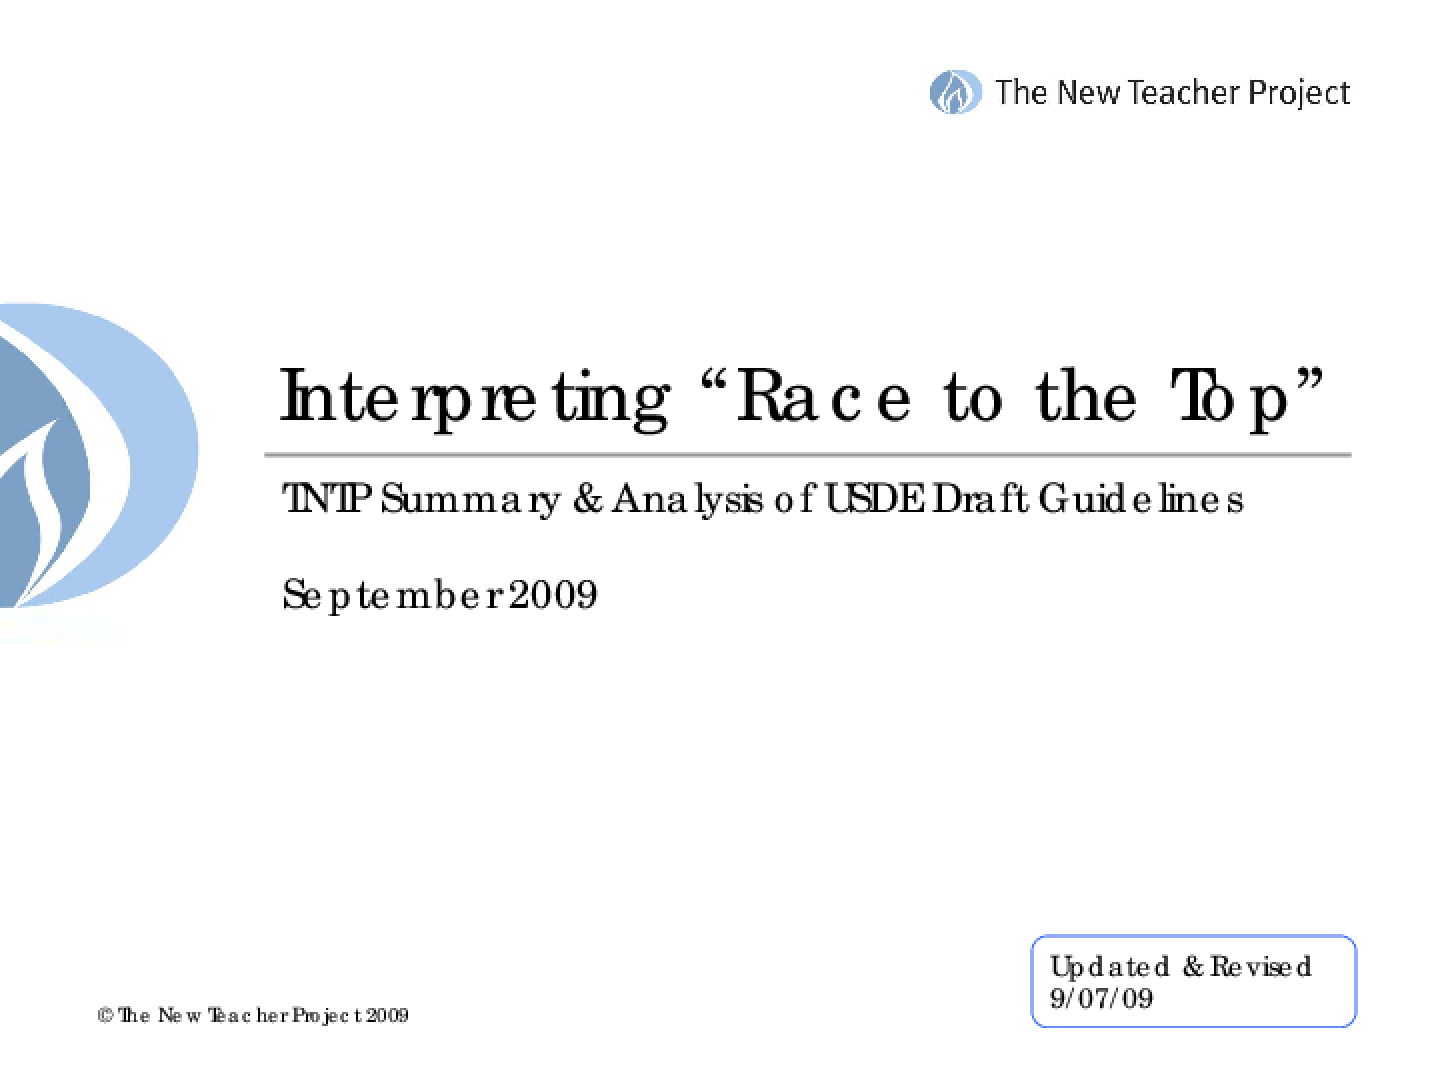 Interpreting Race to the Top TNTP Summary and Analysis of USDE Draft Guidelines